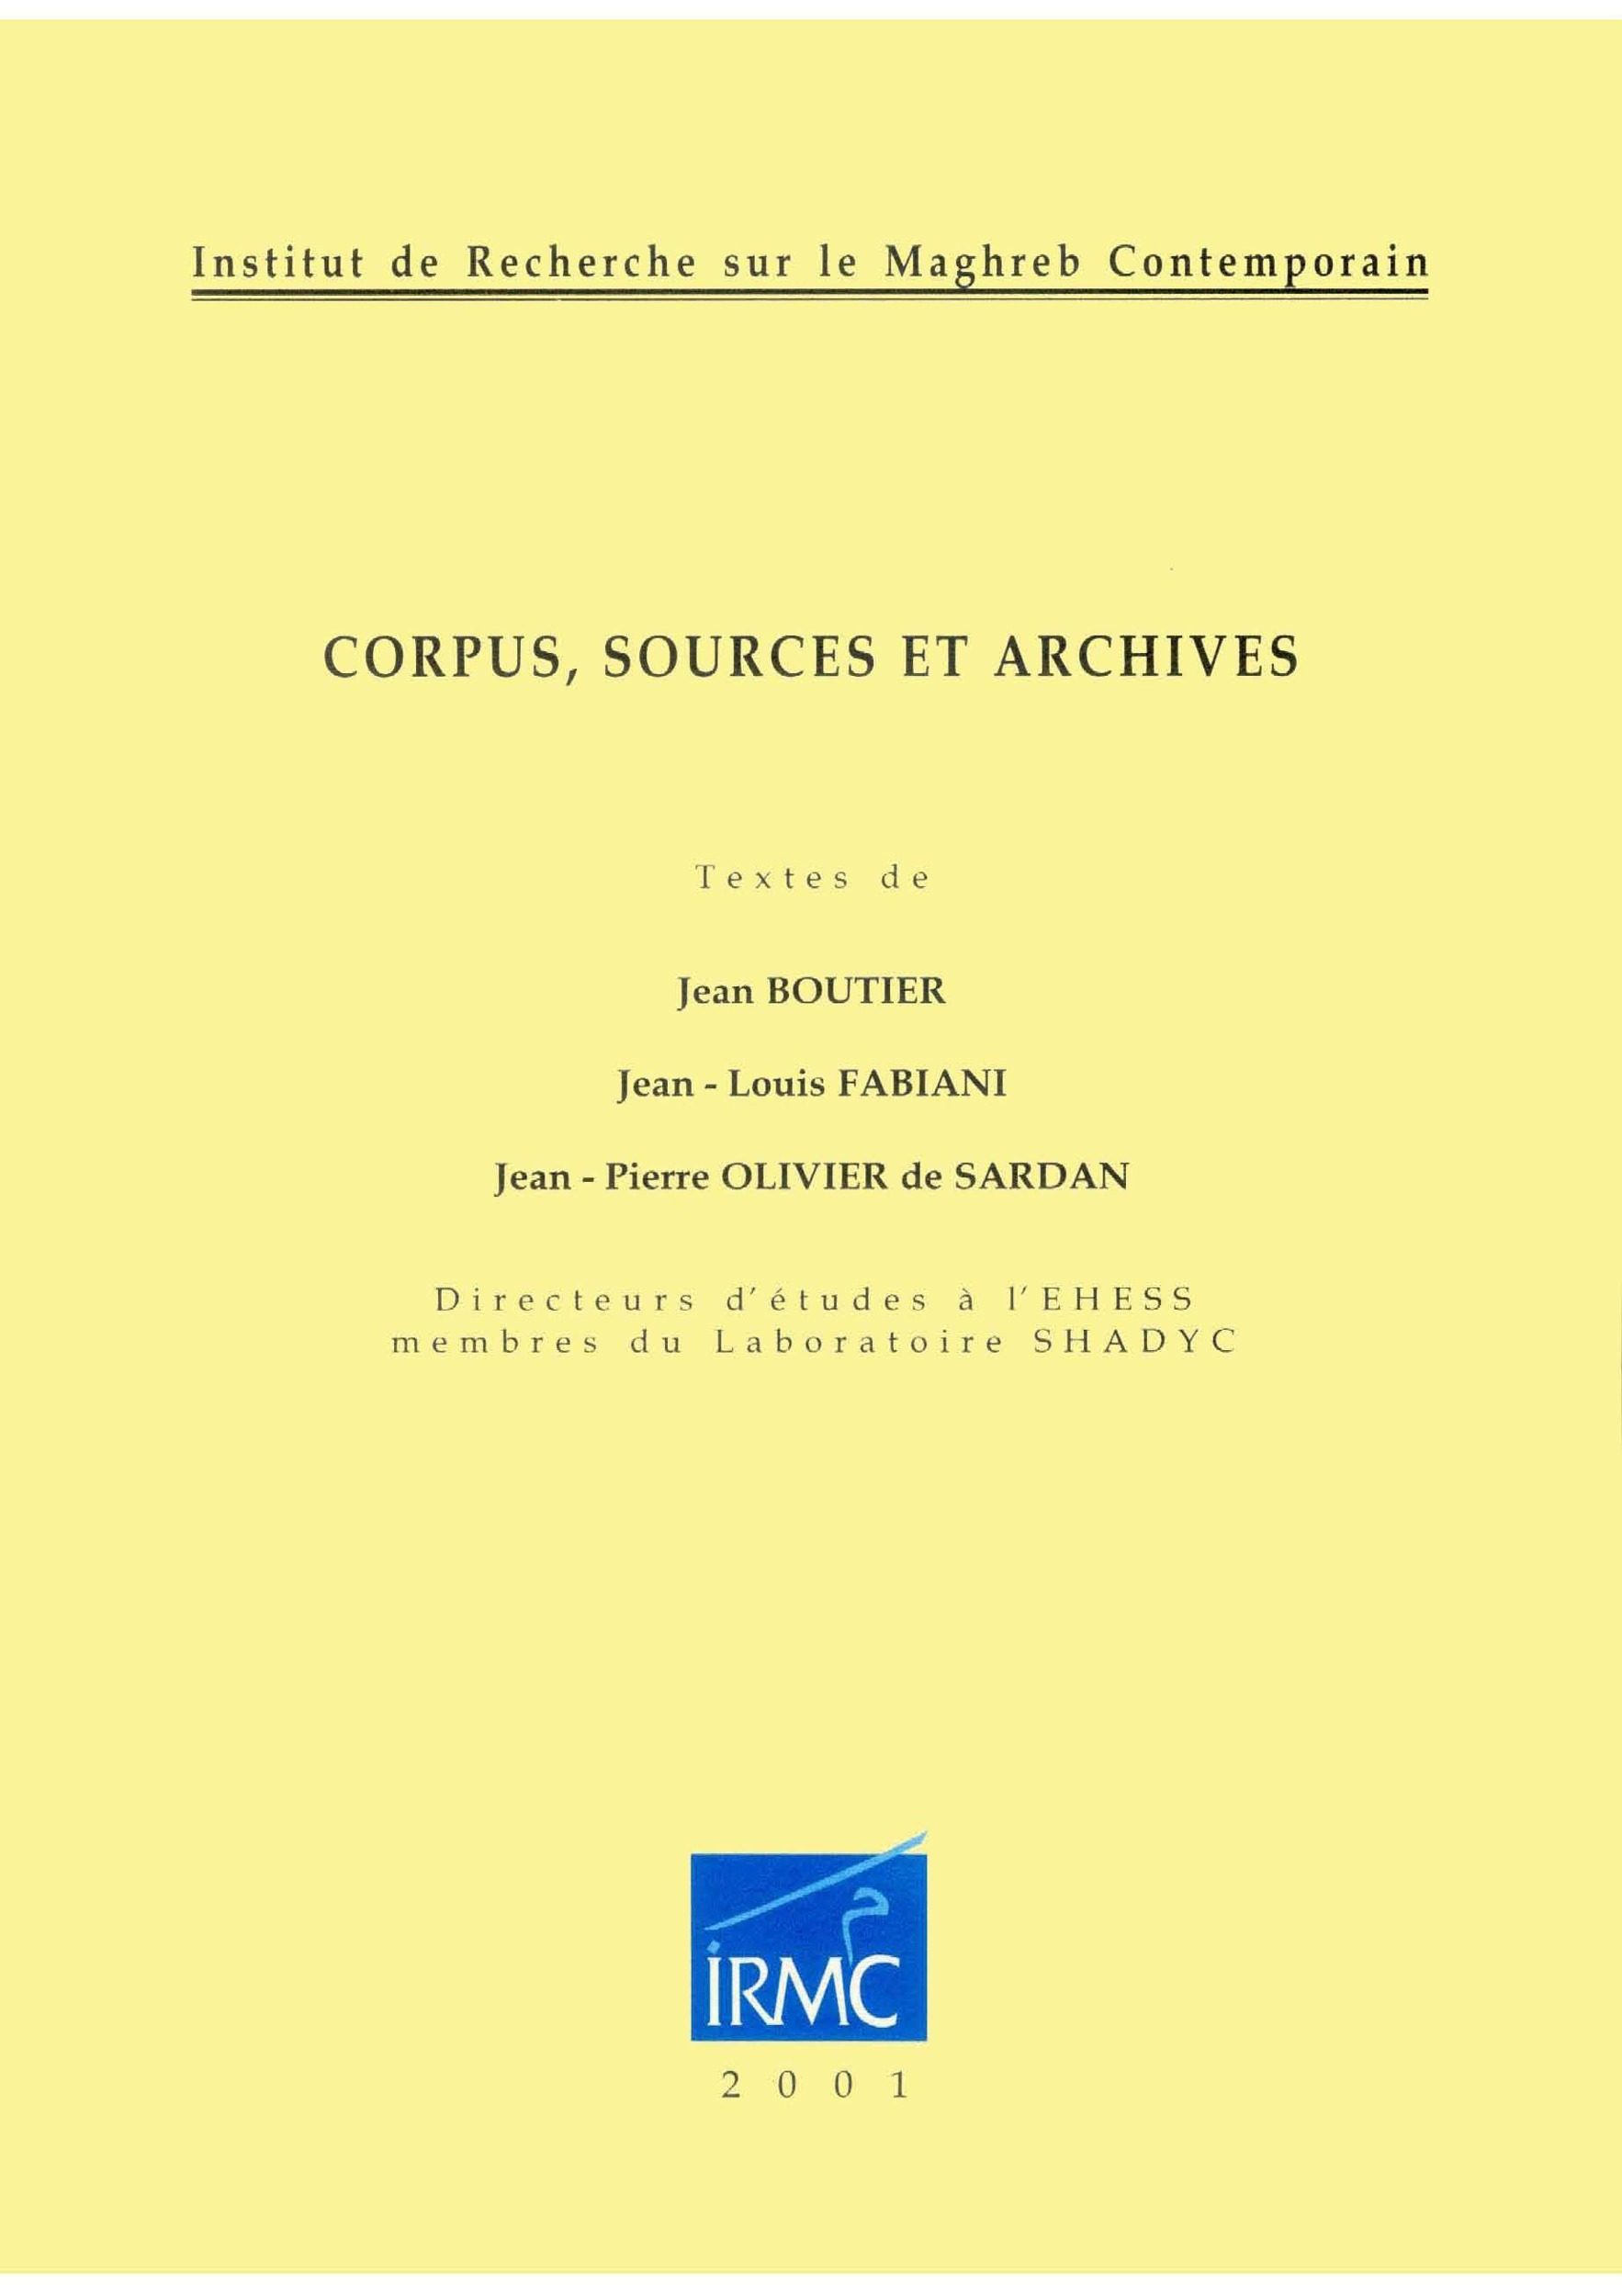 Corpus, sources et archives